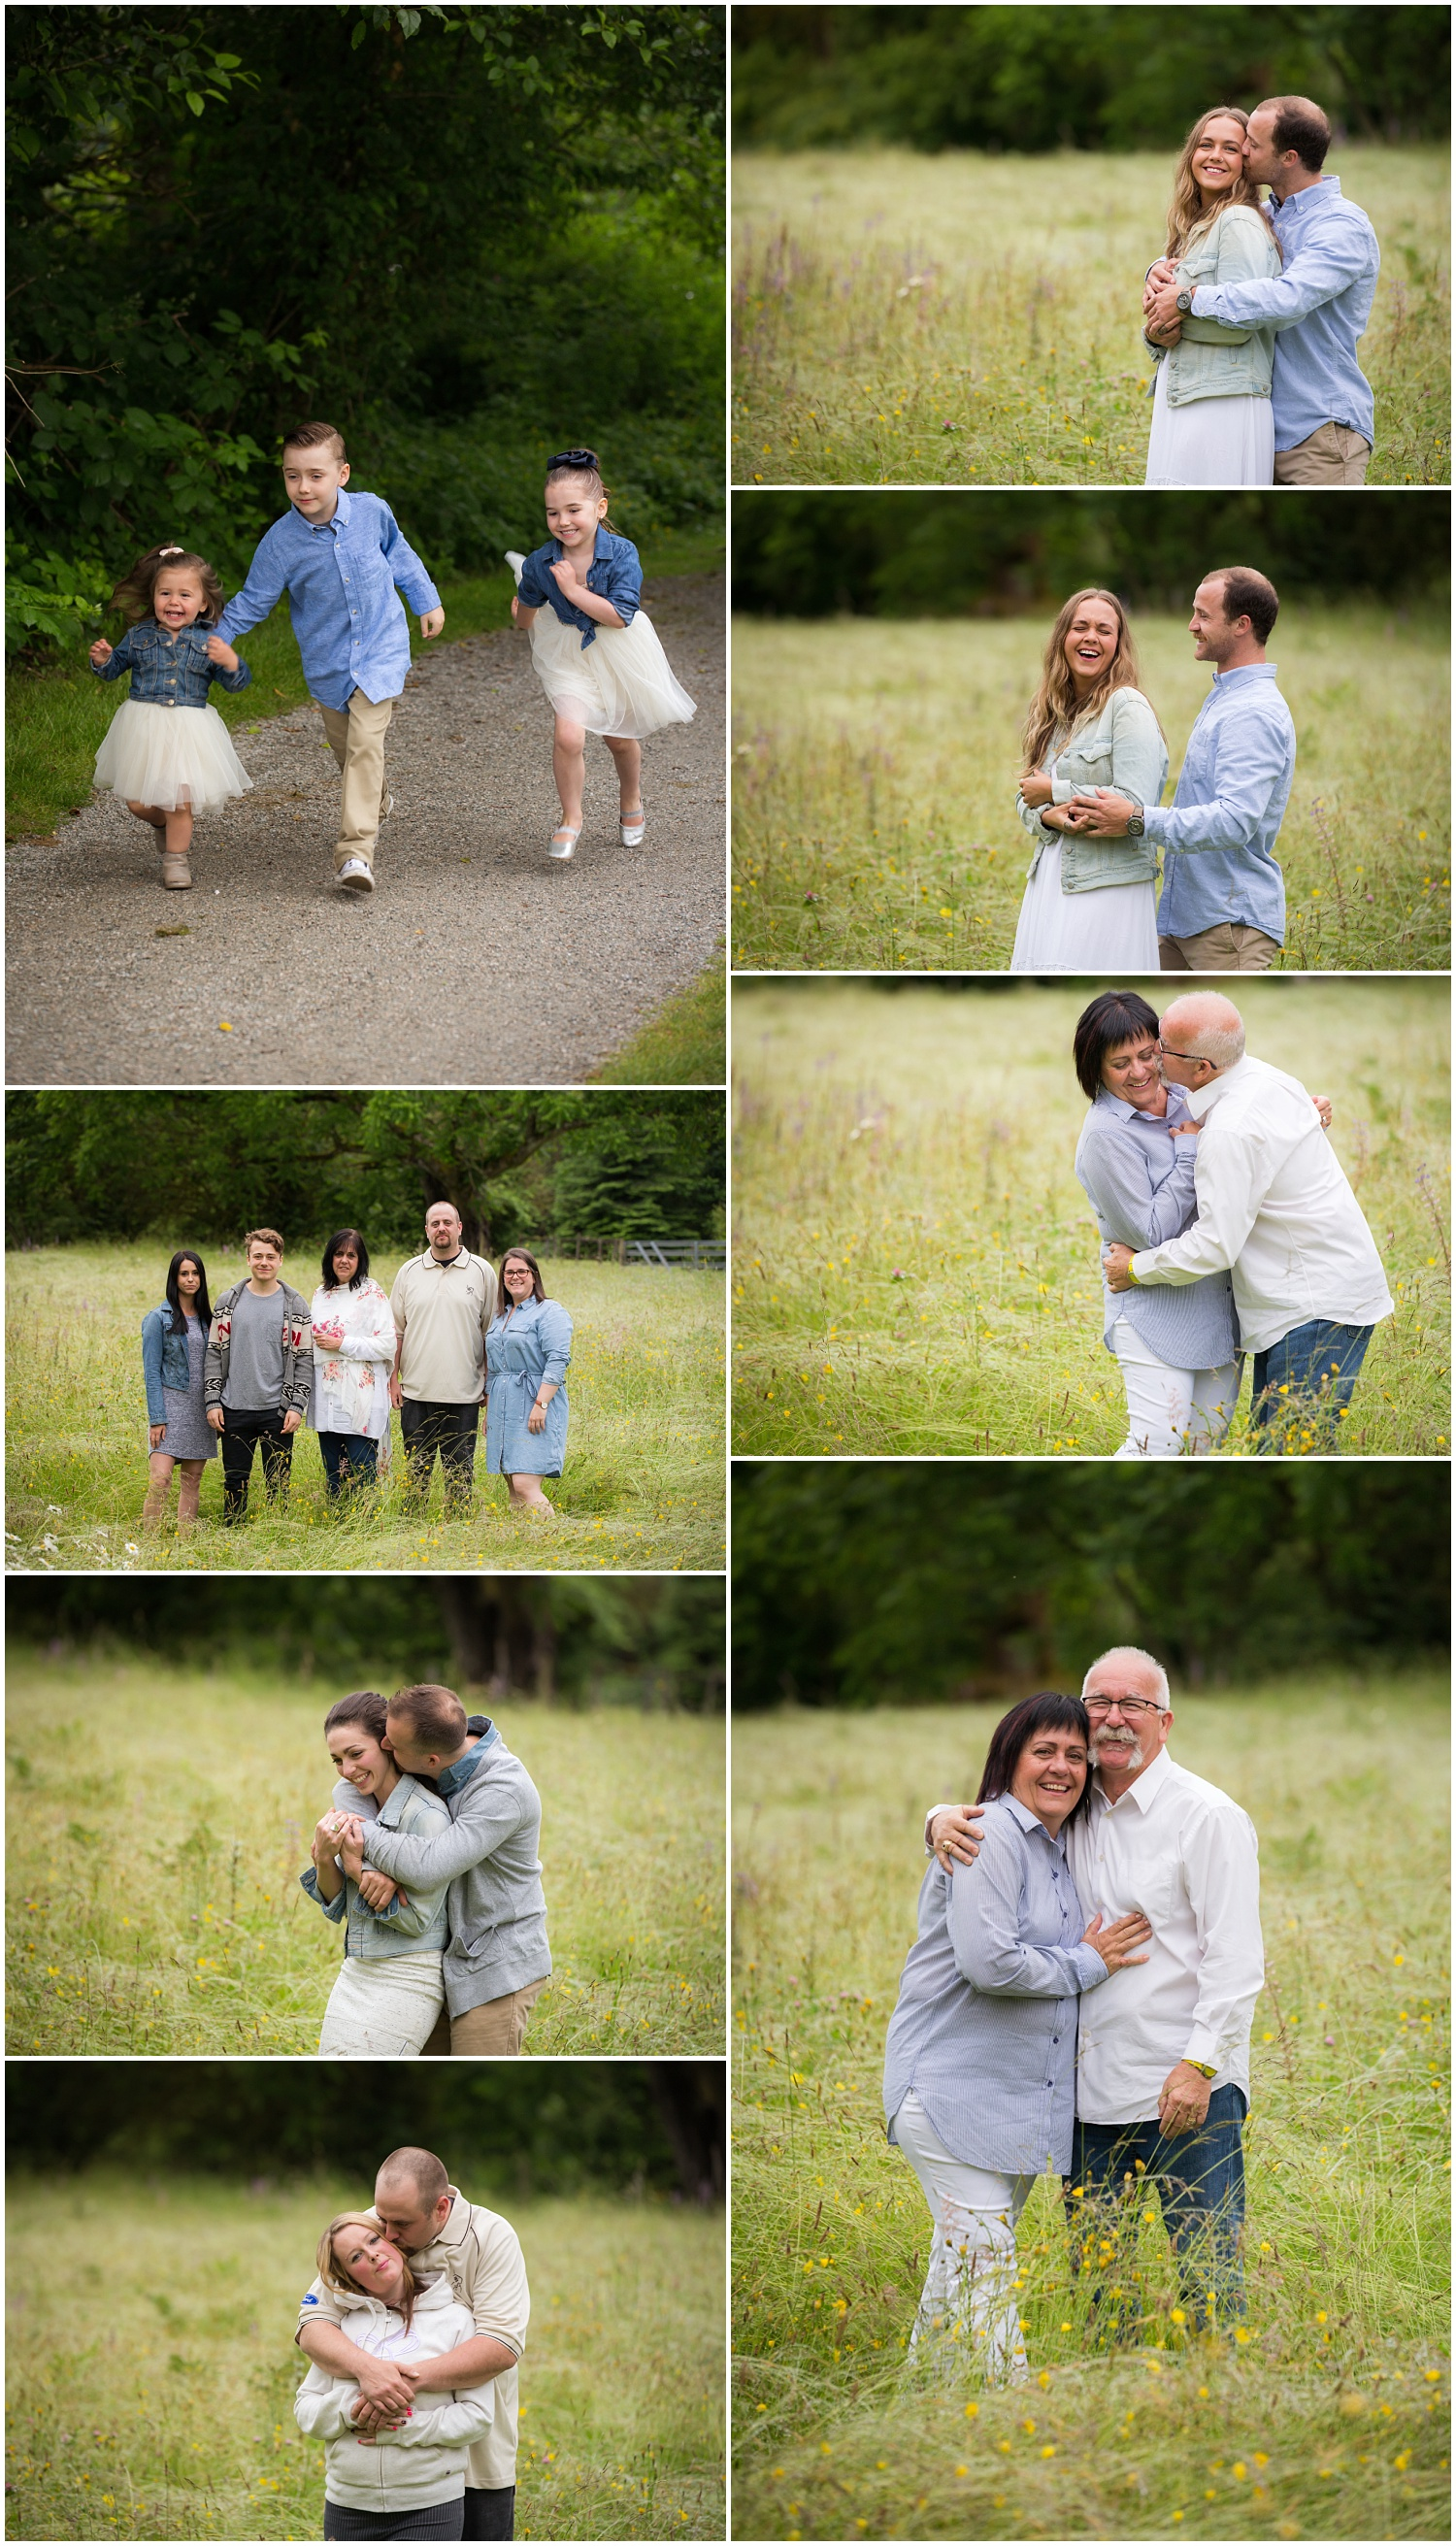 Amazing Day Photography - Derby Reach Park Family Session - Langley Family Photographer (2).jpg